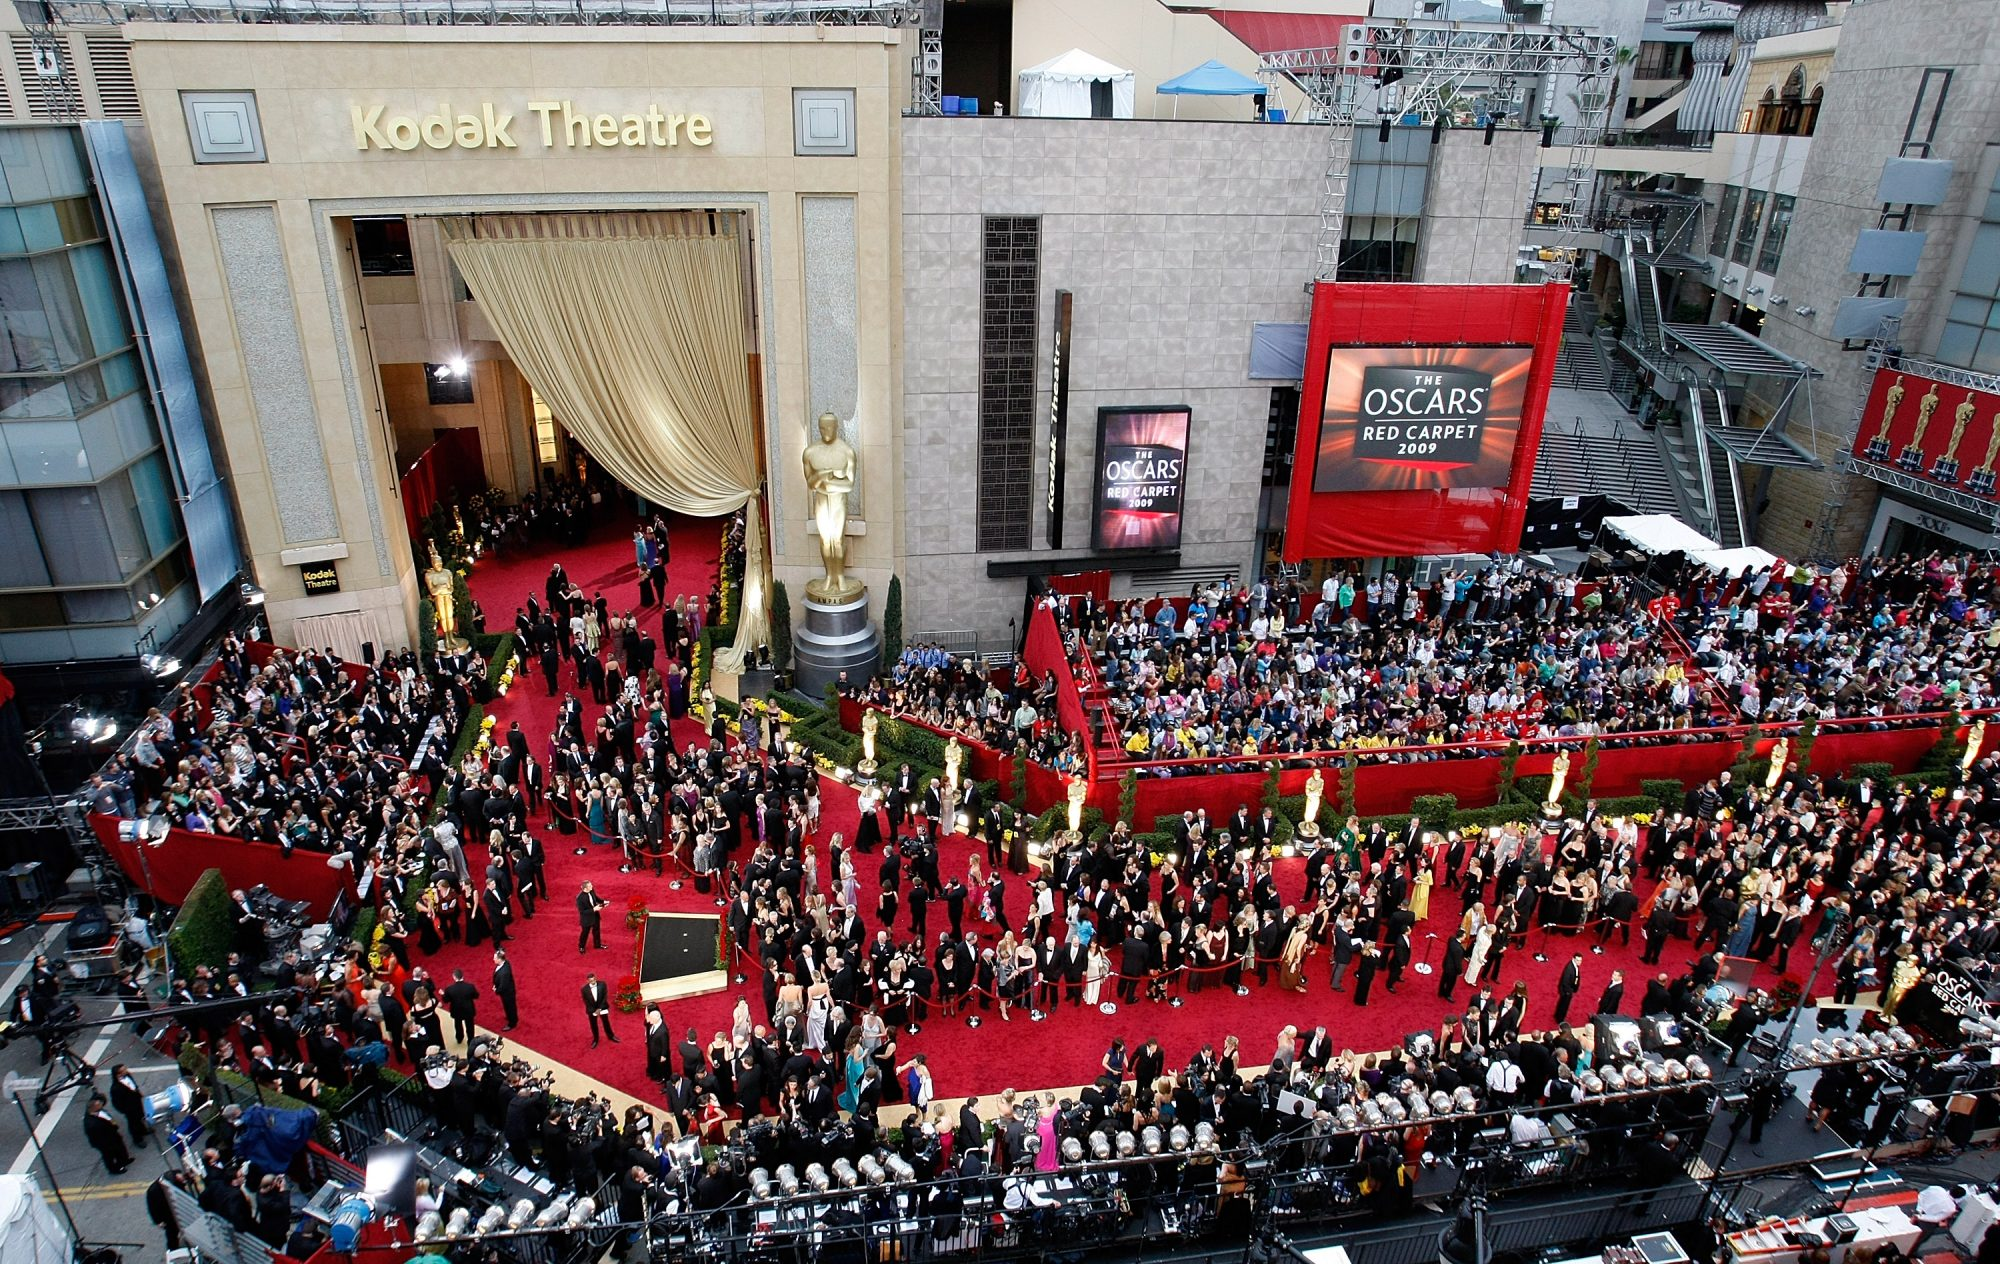 What is the total cost of the Oscars ceremony?